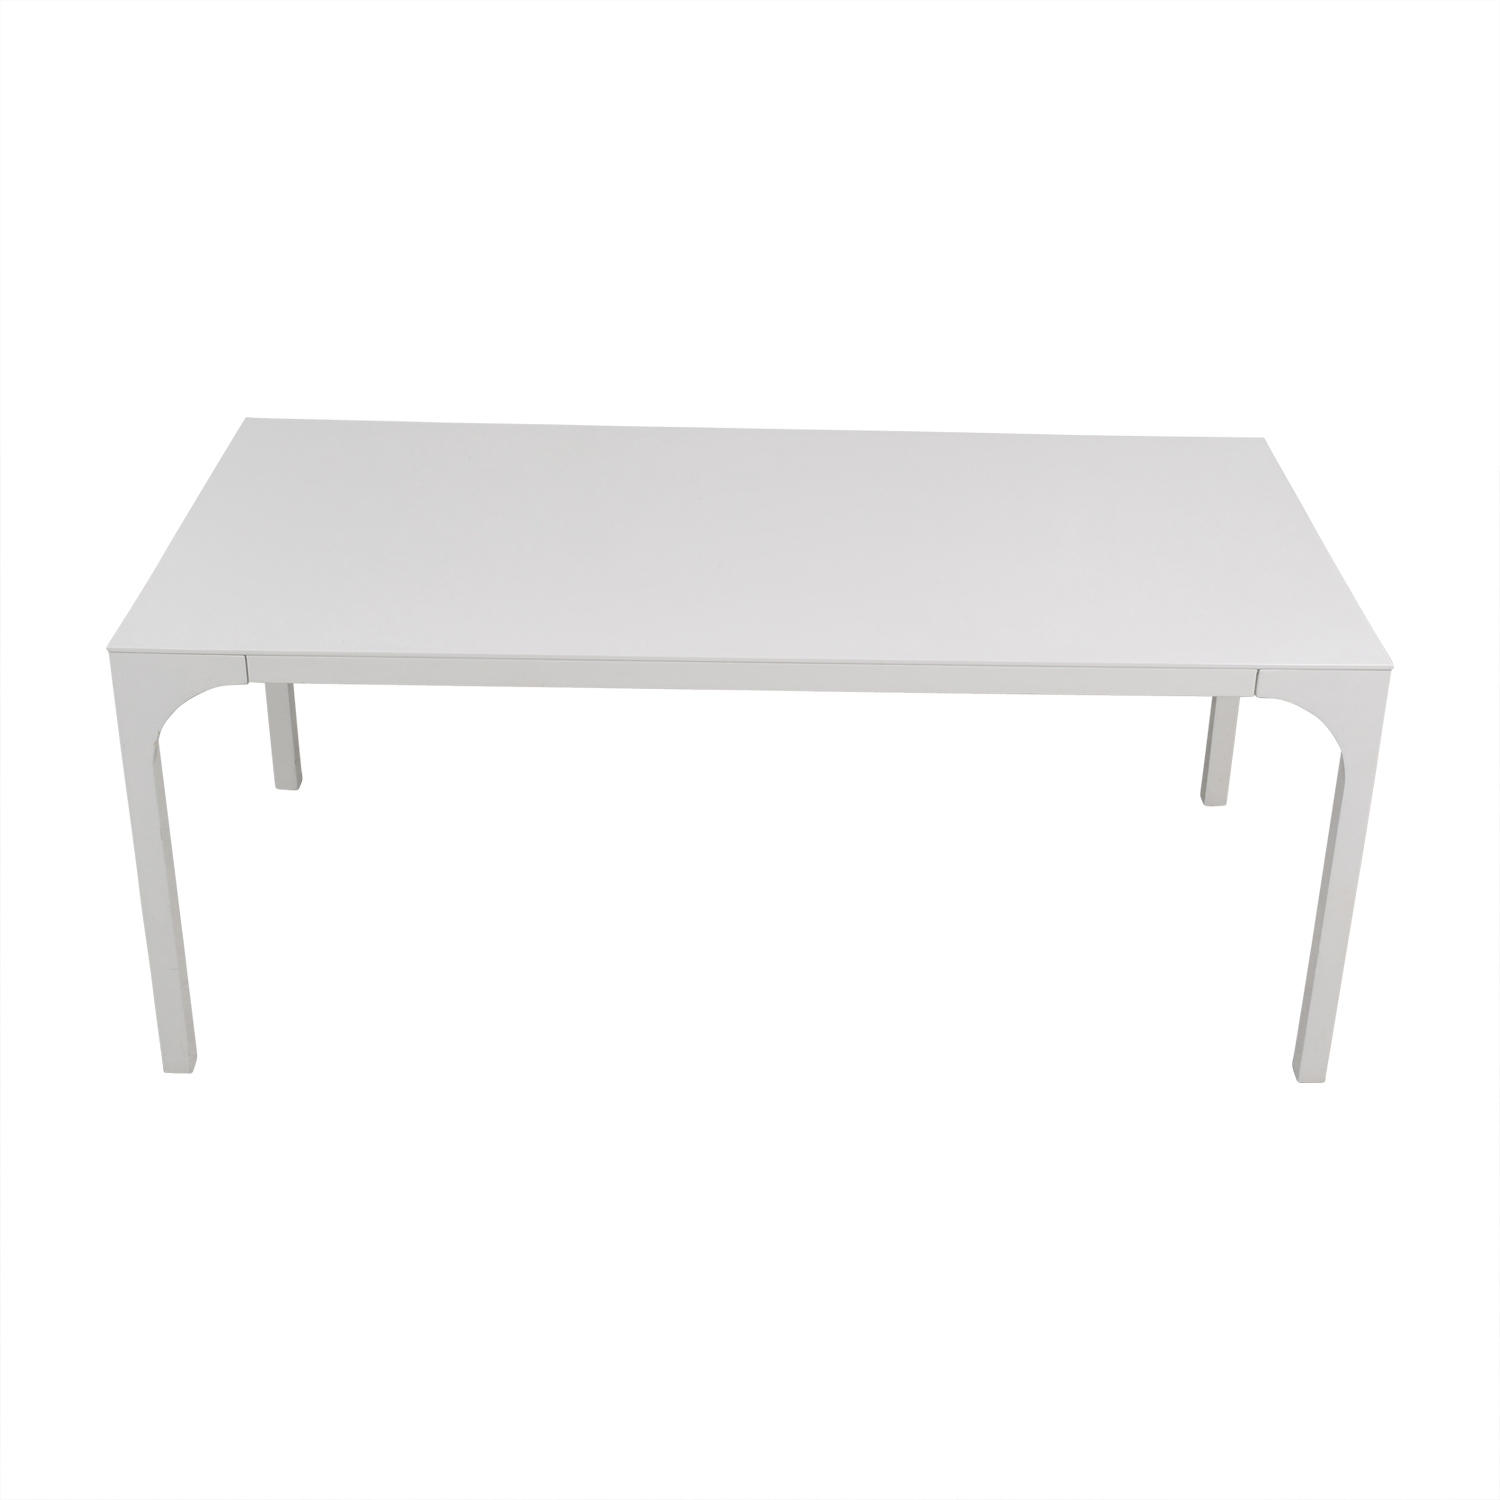 Superieur 53% OFF   White Rectangular Table / Tables